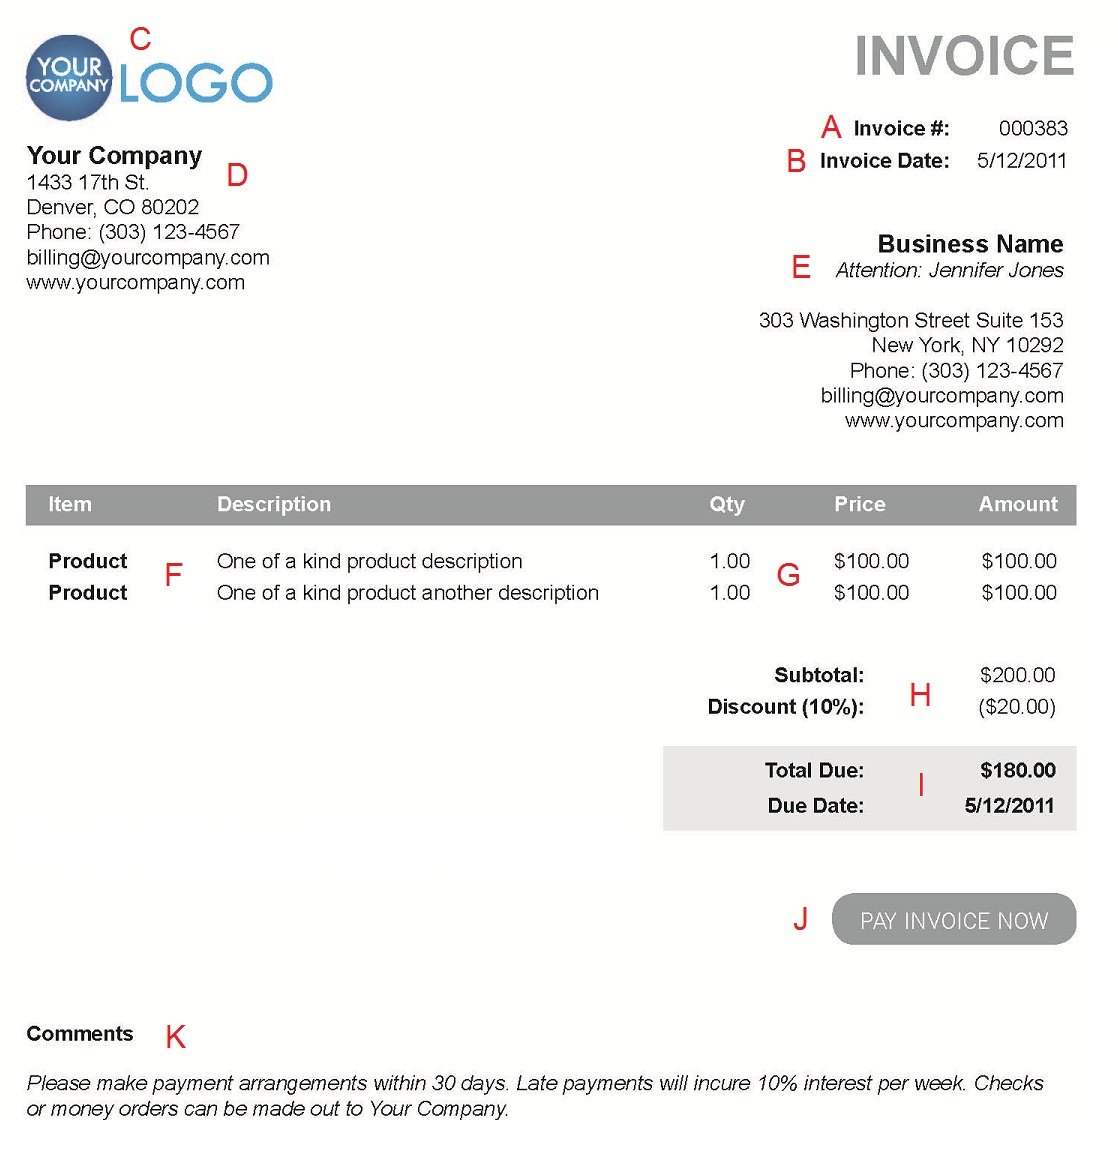 Pigbrotherus  Winning The  Different Sections Of An Electronic Payment Invoice With Luxury A  With Charming Writing An Invoice Also Design Invoice In Addition Standard Invoice Template And Paypal Invoice Fee Calculator As Well As Invoice Funding Additionally Itemized Invoice From Paysimplecom With Pigbrotherus  Luxury The  Different Sections Of An Electronic Payment Invoice With Charming A  And Winning Writing An Invoice Also Design Invoice In Addition Standard Invoice Template From Paysimplecom